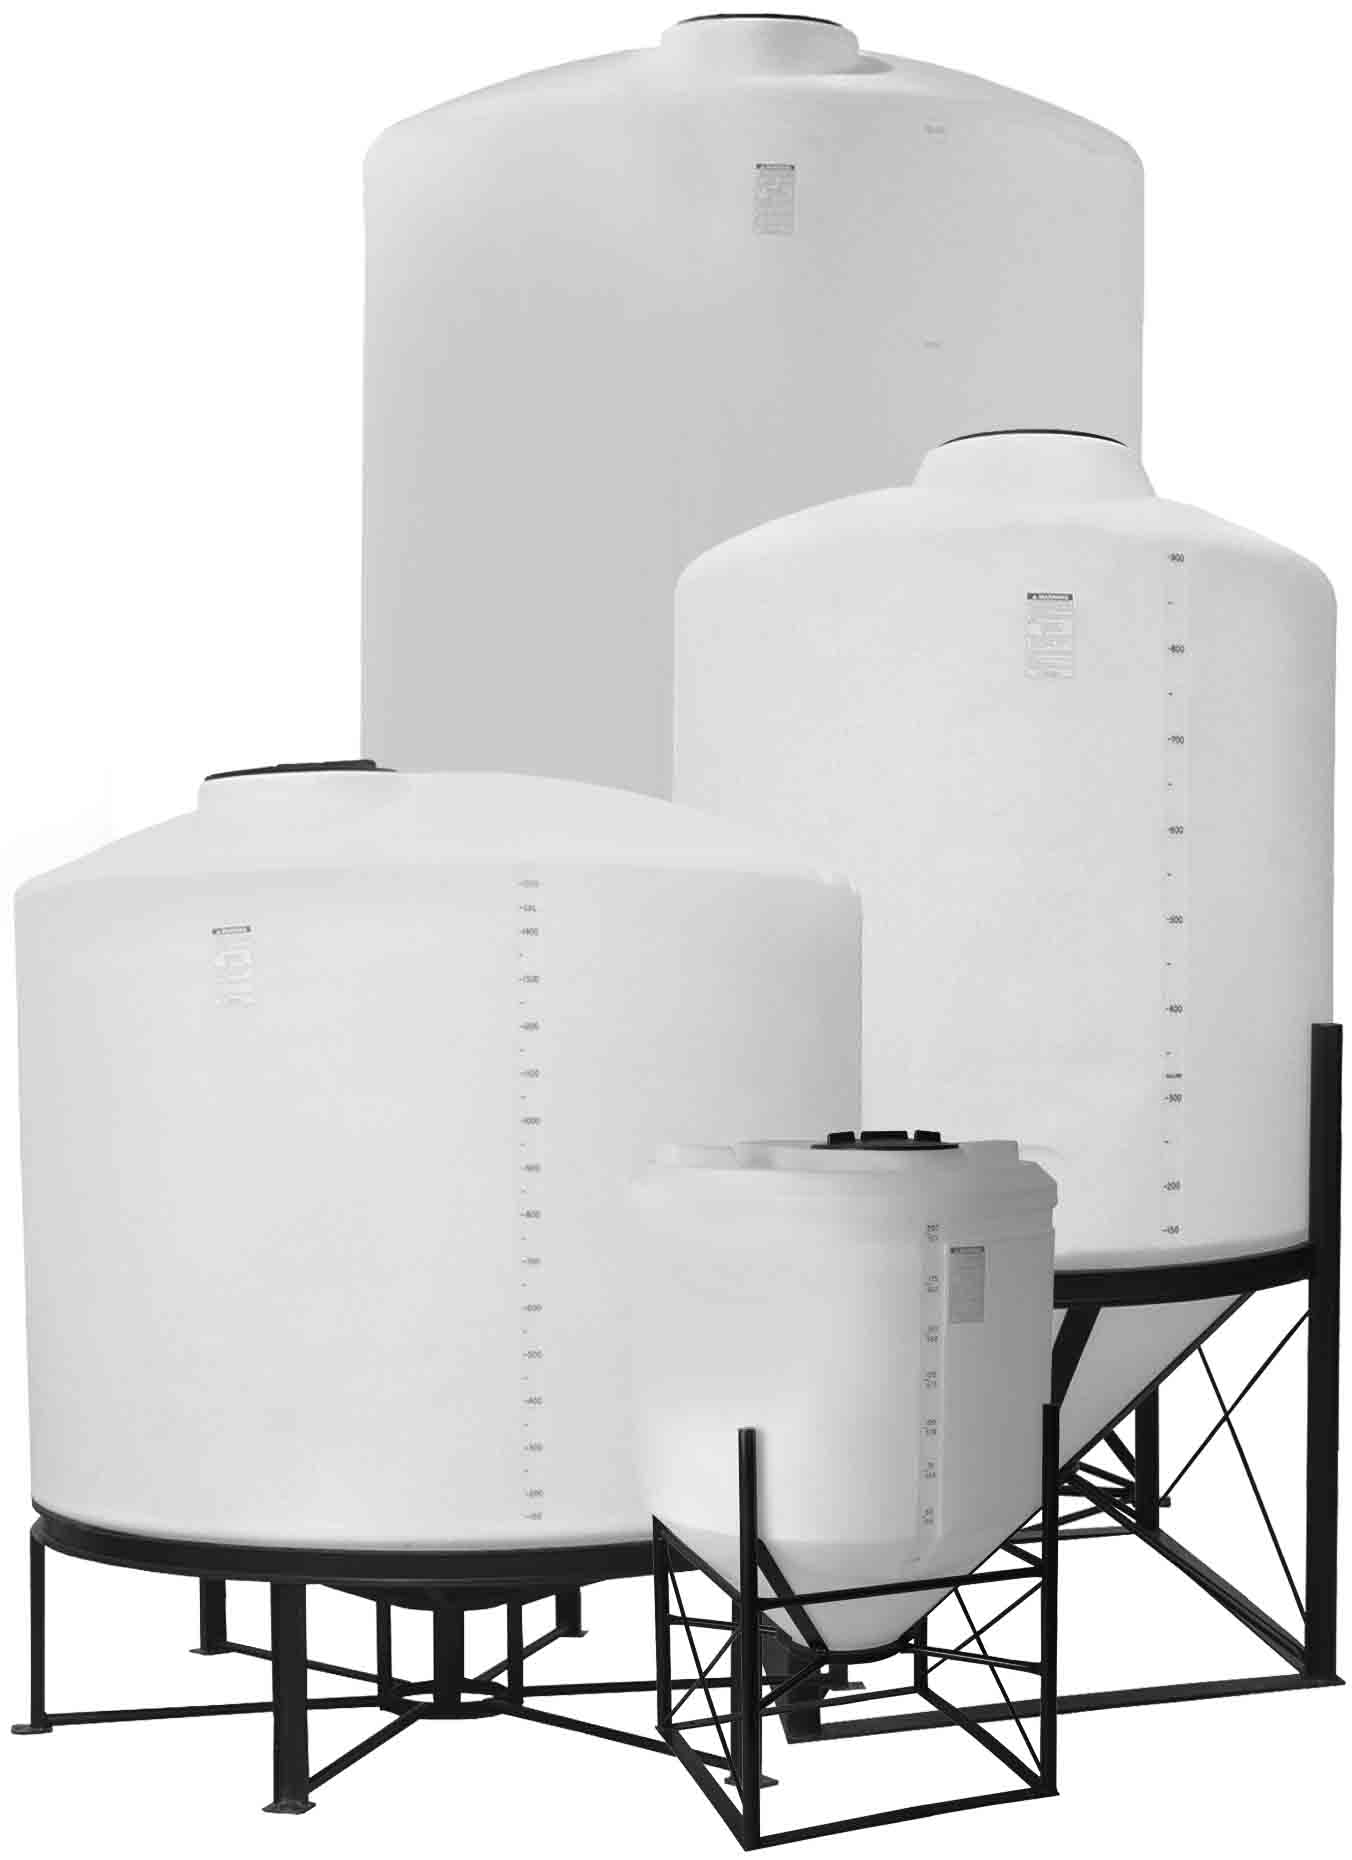 Tanks-Fiberglass/Poly